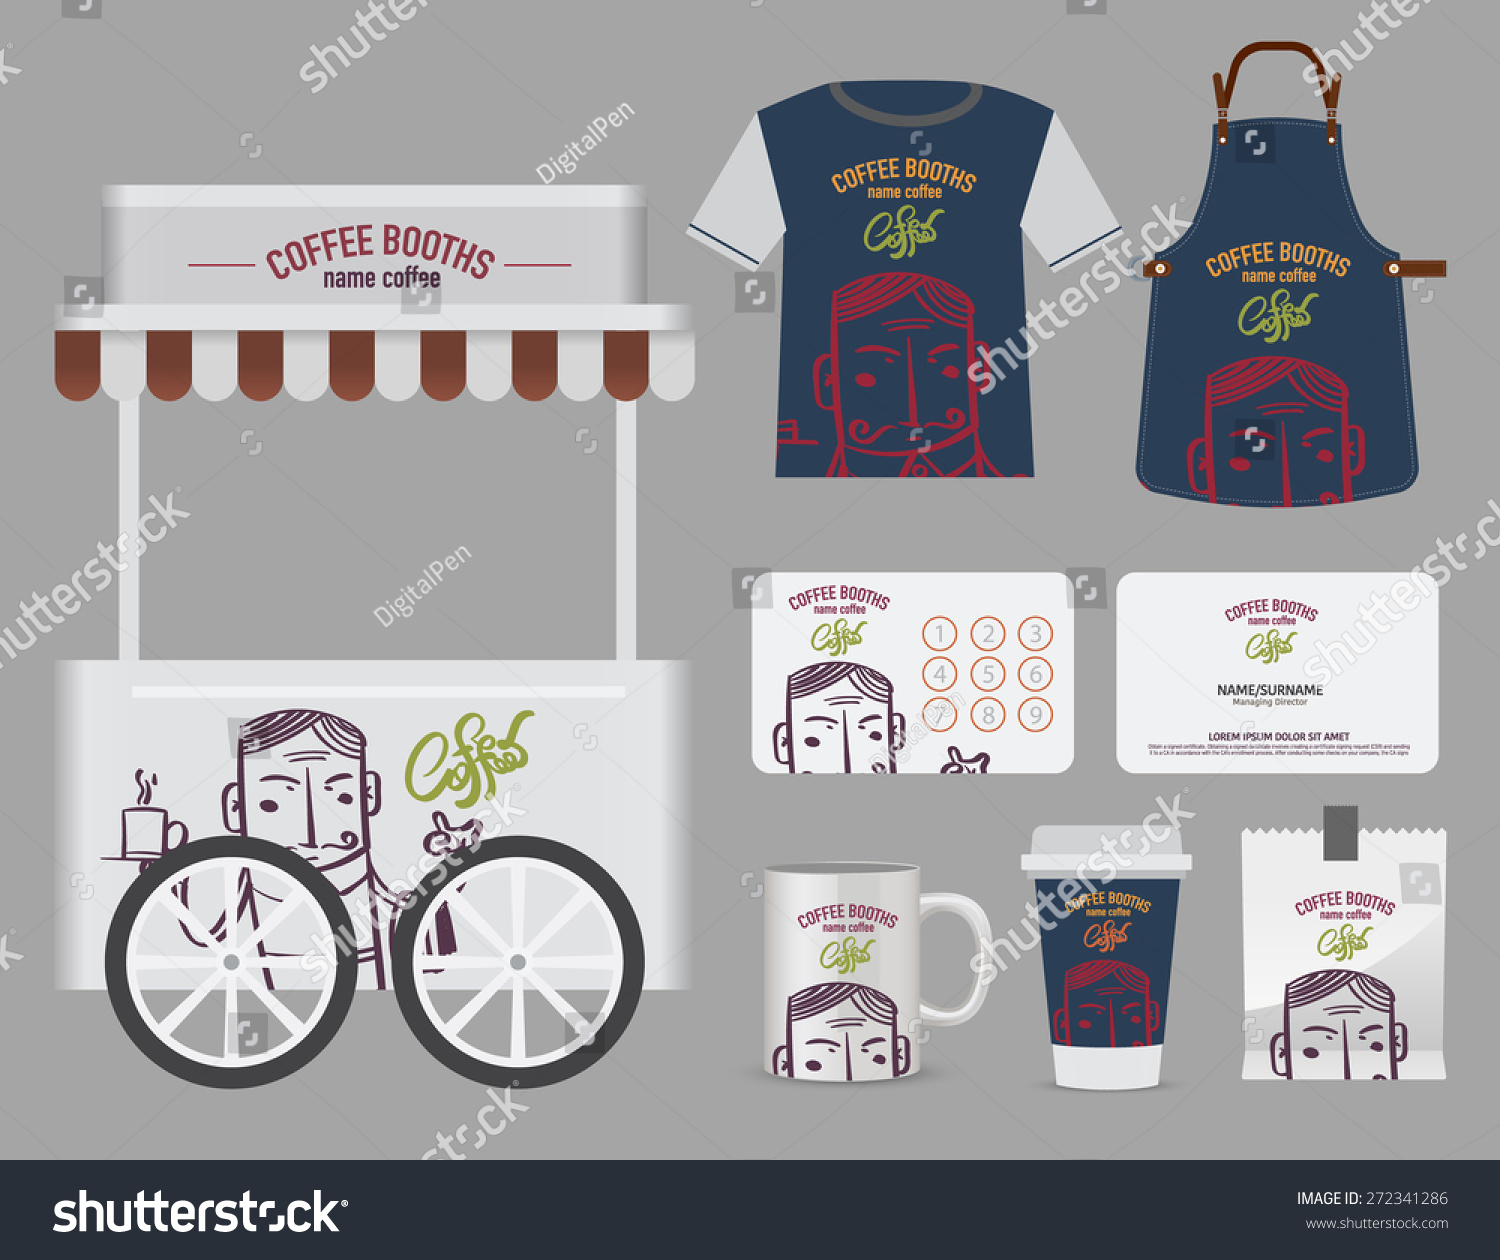 Shirt design card - Vector Coffee Booths Set T Shirt Name Card And Free Symbol Design